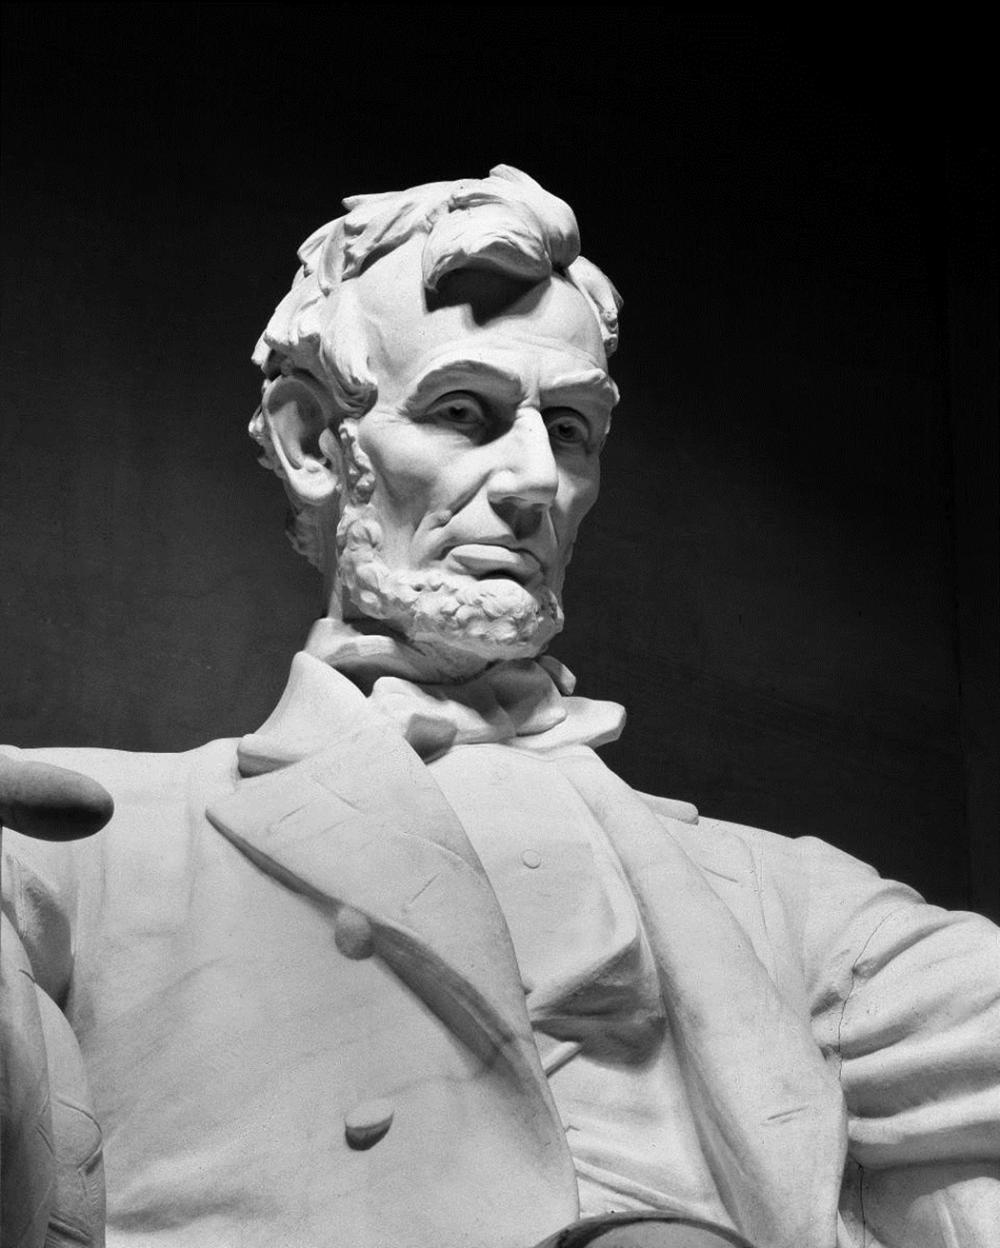 CAROL HIGHSMITH - LINCOLN MEMORIAL STATUE BY DANIEL CHESTER FRENCH, WASHINGTON, D.C. - BLACK AND WHITE VARIANT